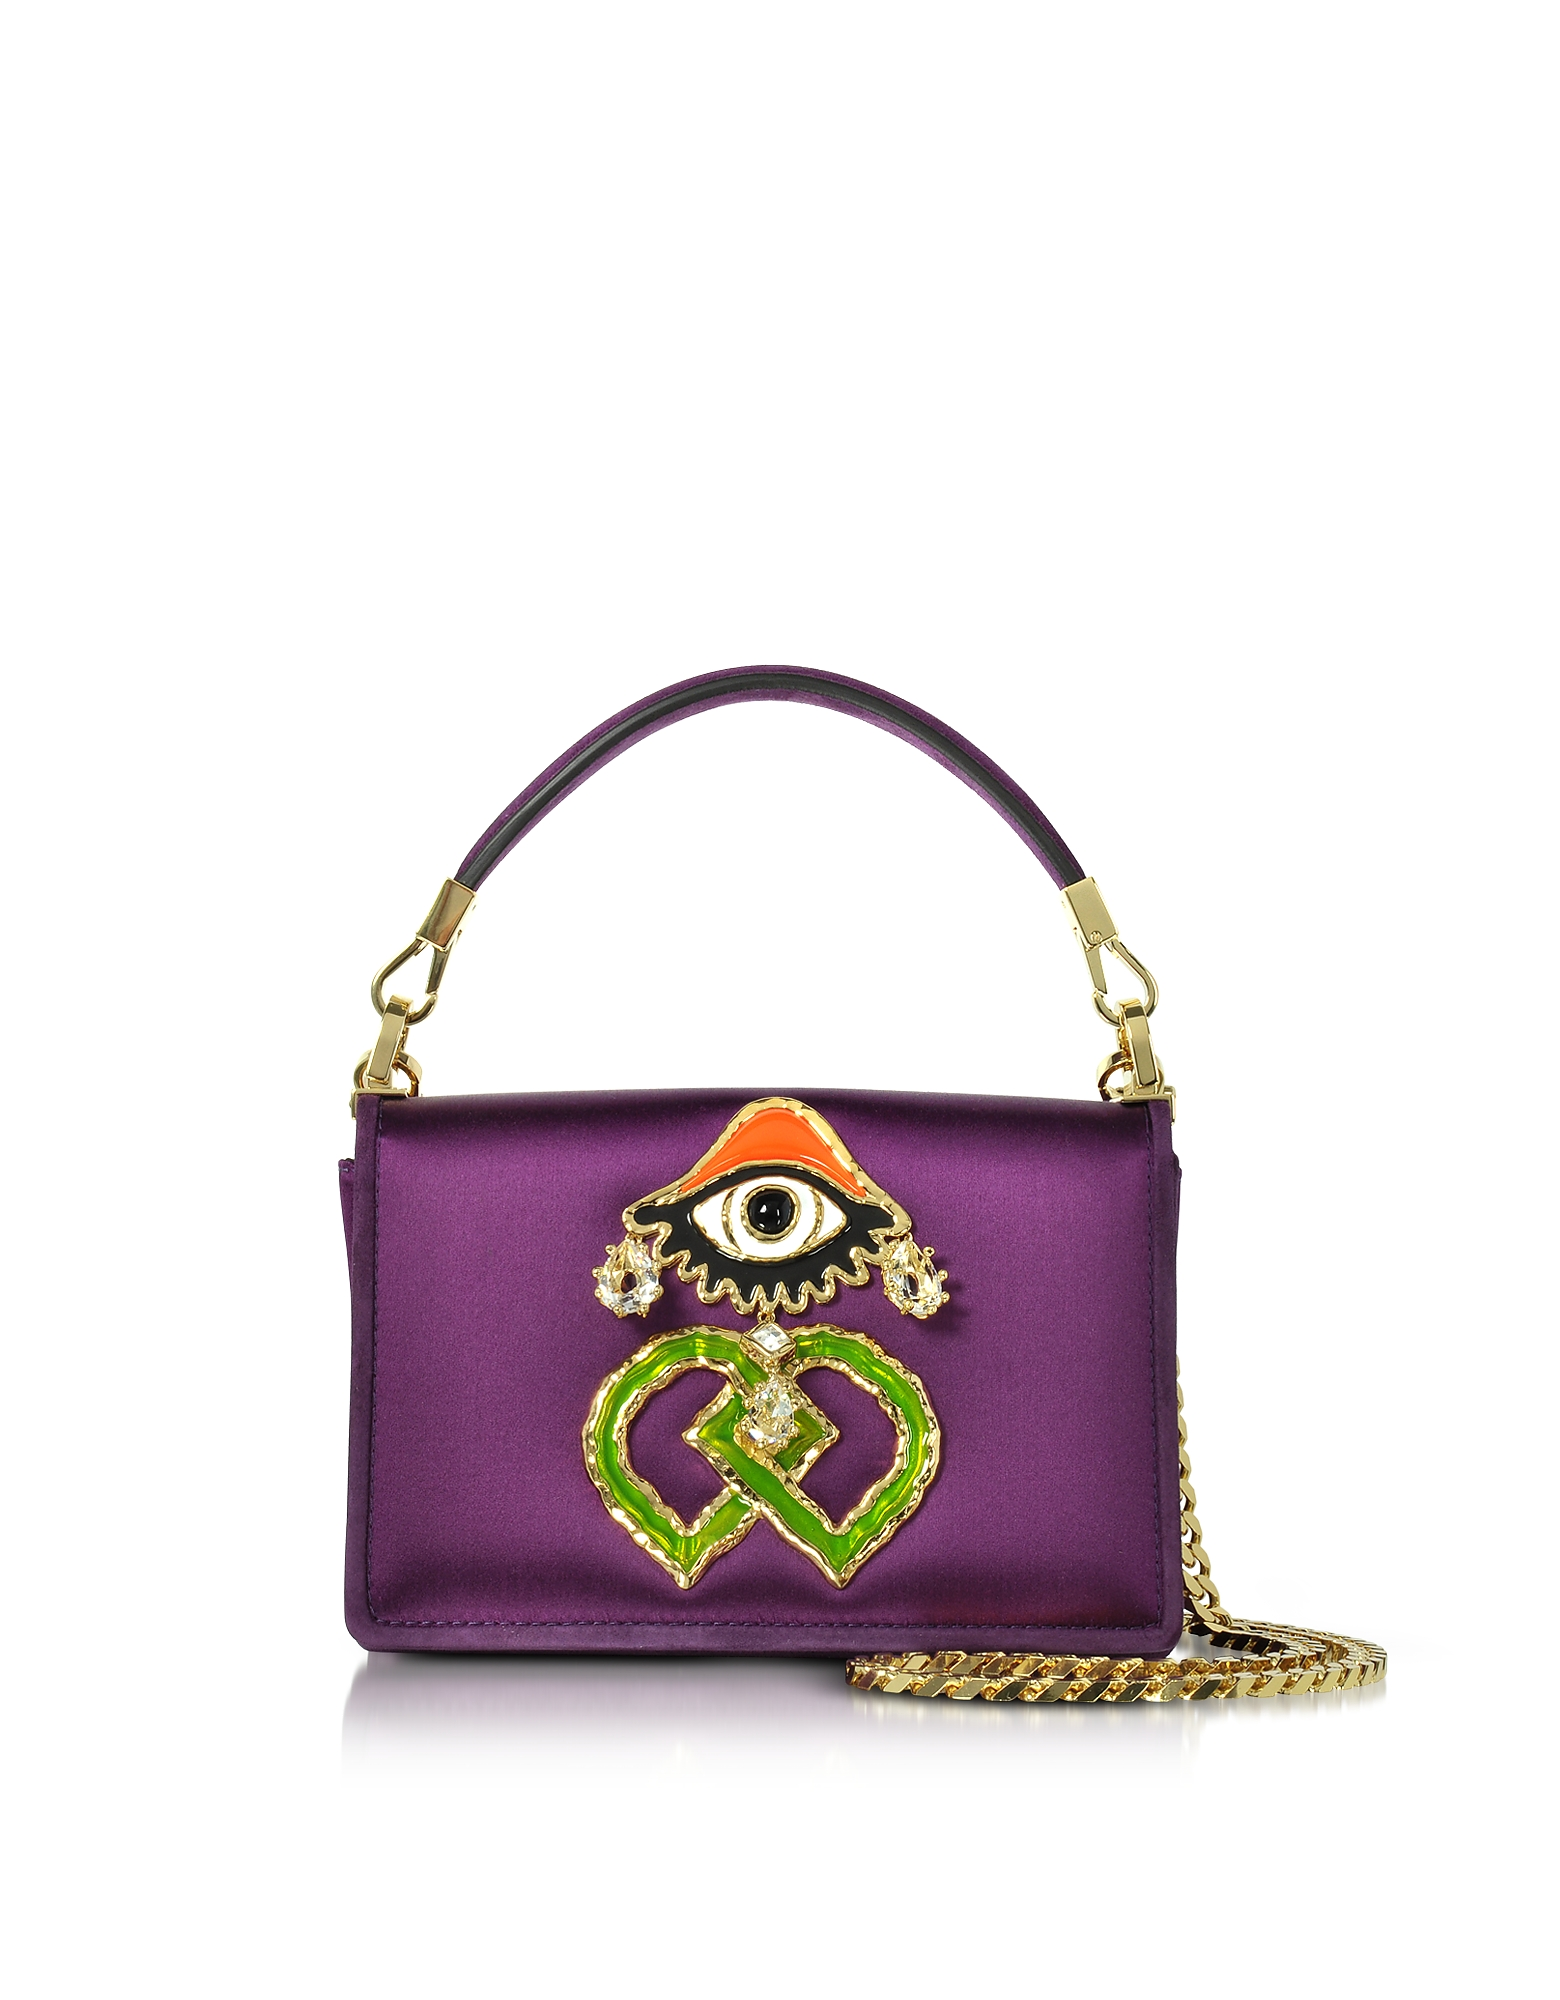 DSquared2 Handbags, Purple Satin and Suede Shoulder Bag